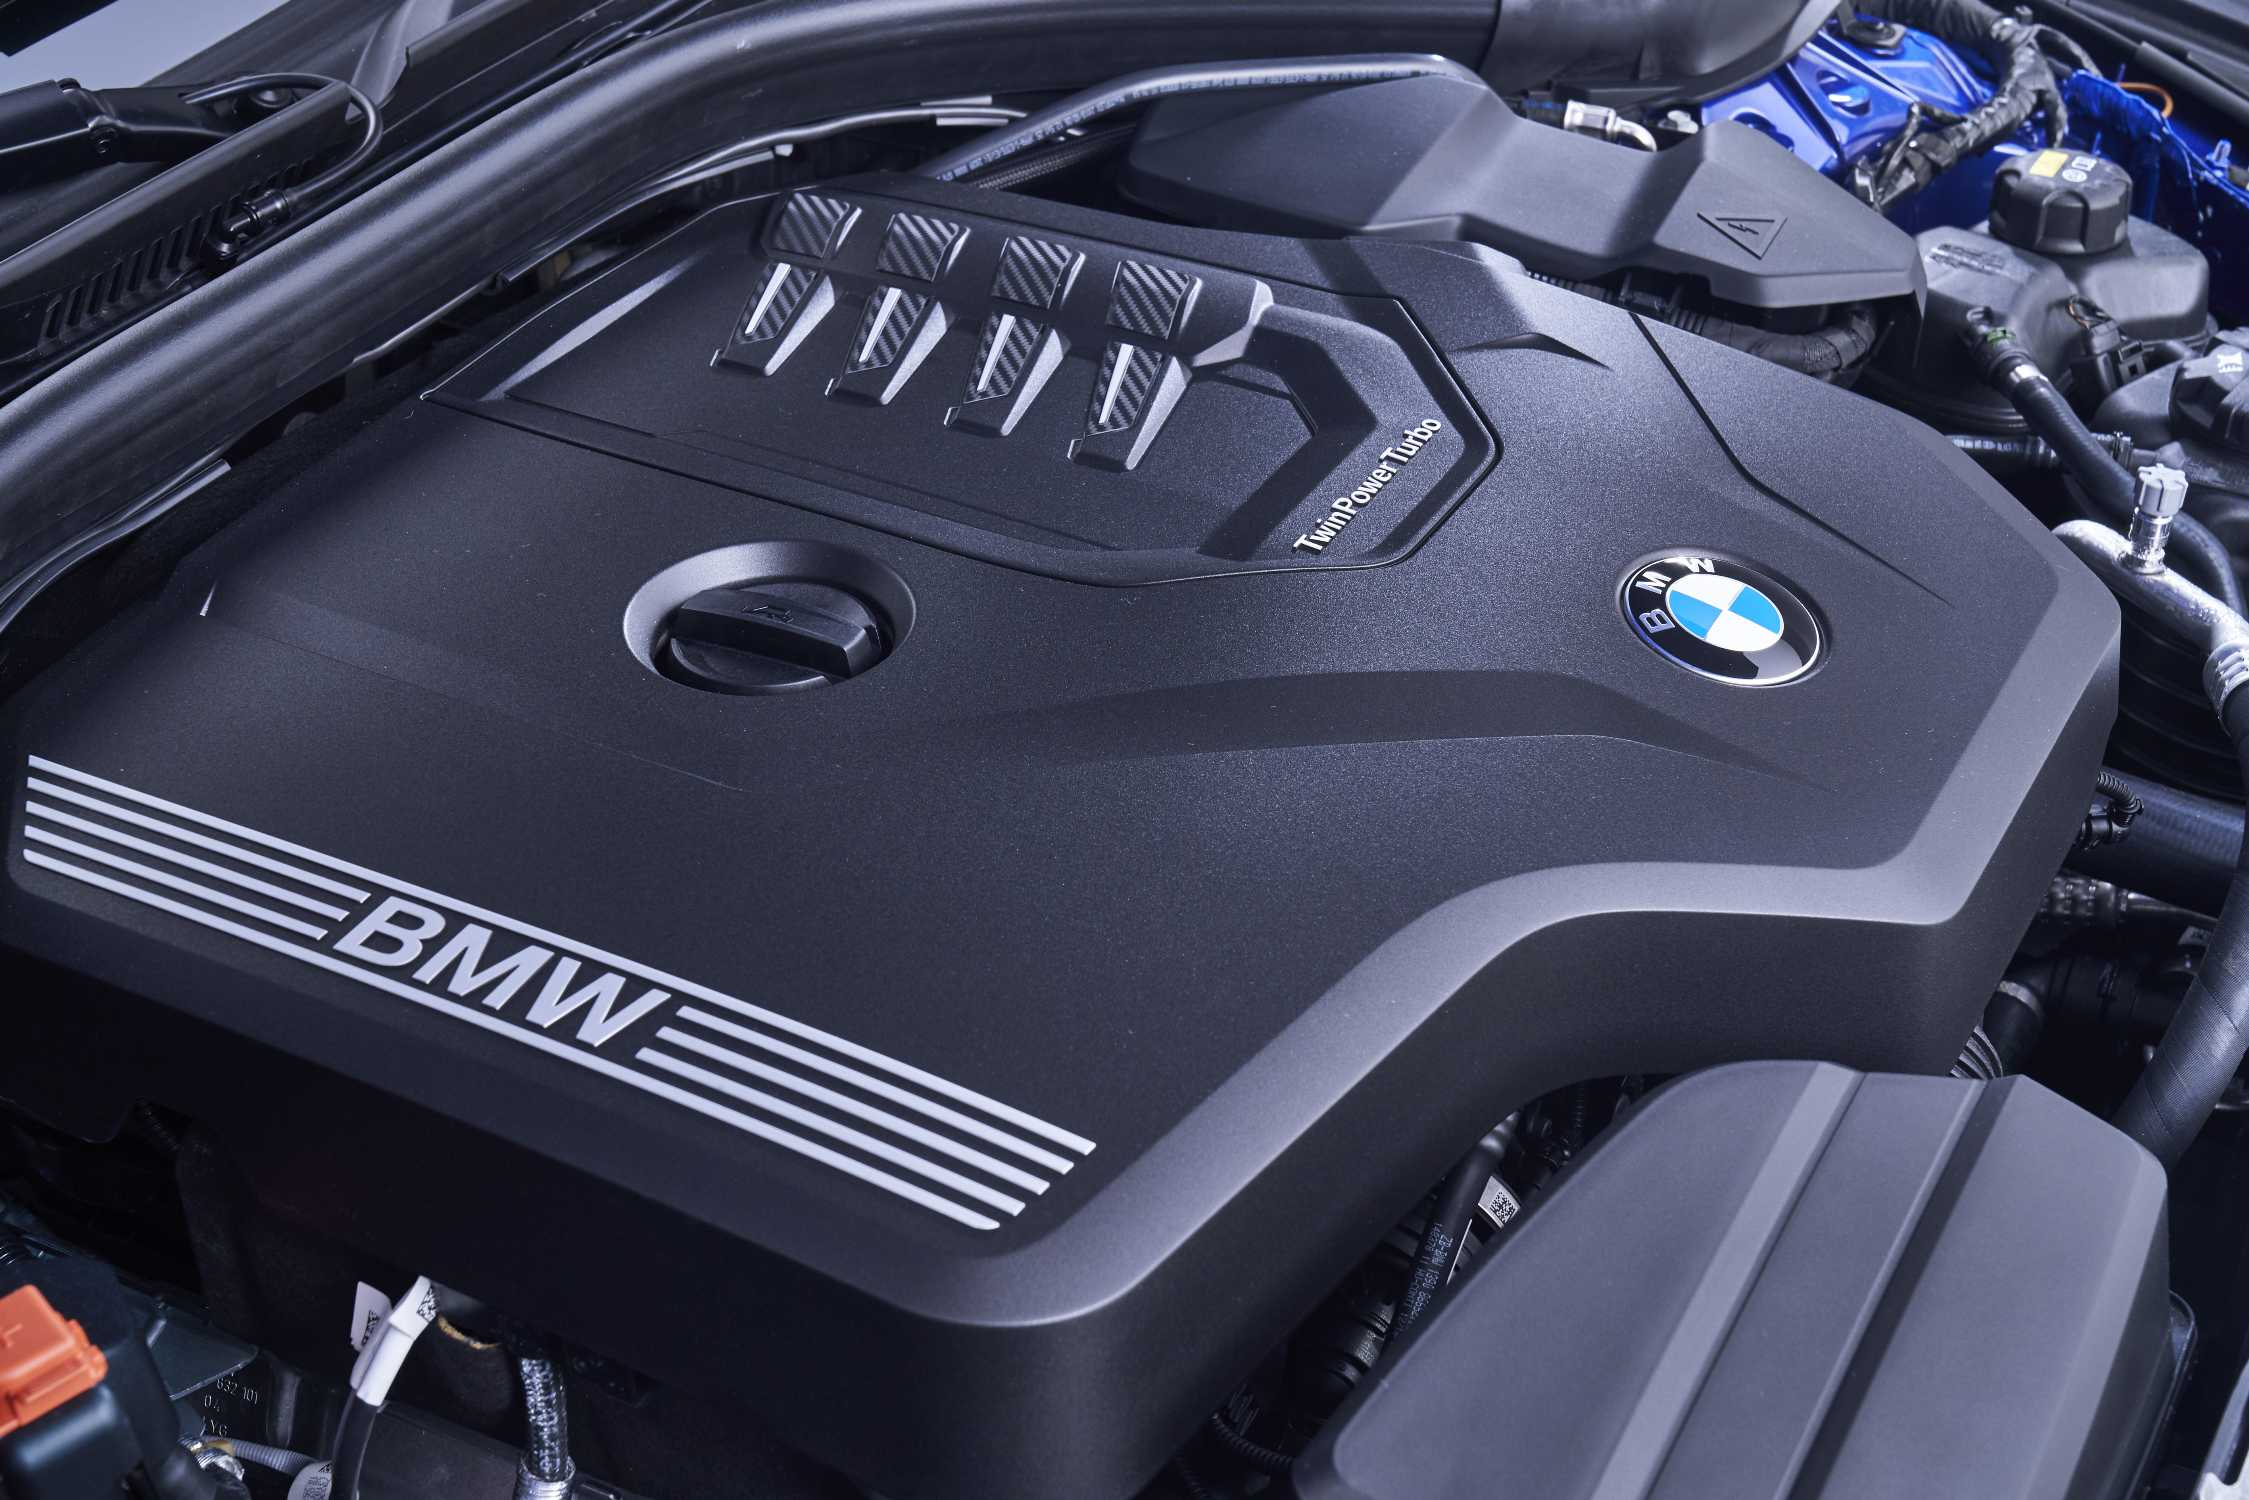 The all-new BMW 3 Series Sedan - BMW TwinPower Turbo four-cylinder